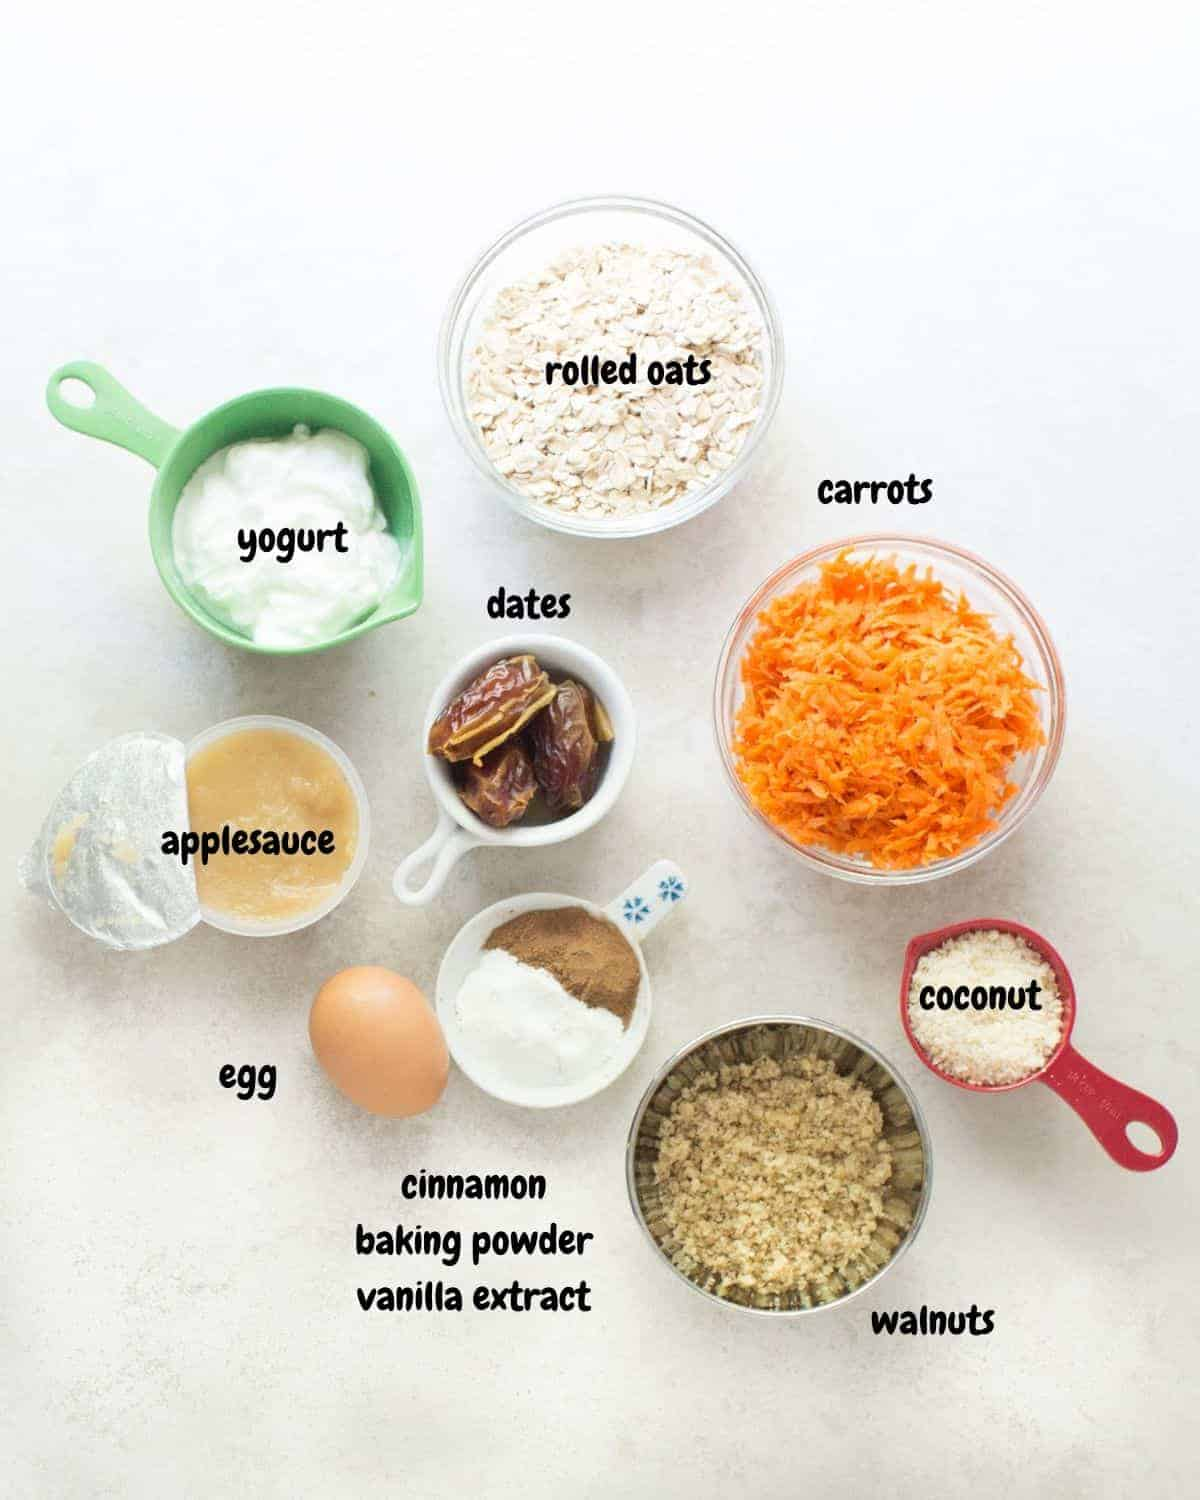 all the ingredients for carrot oatmeal muffins laid down on a white background